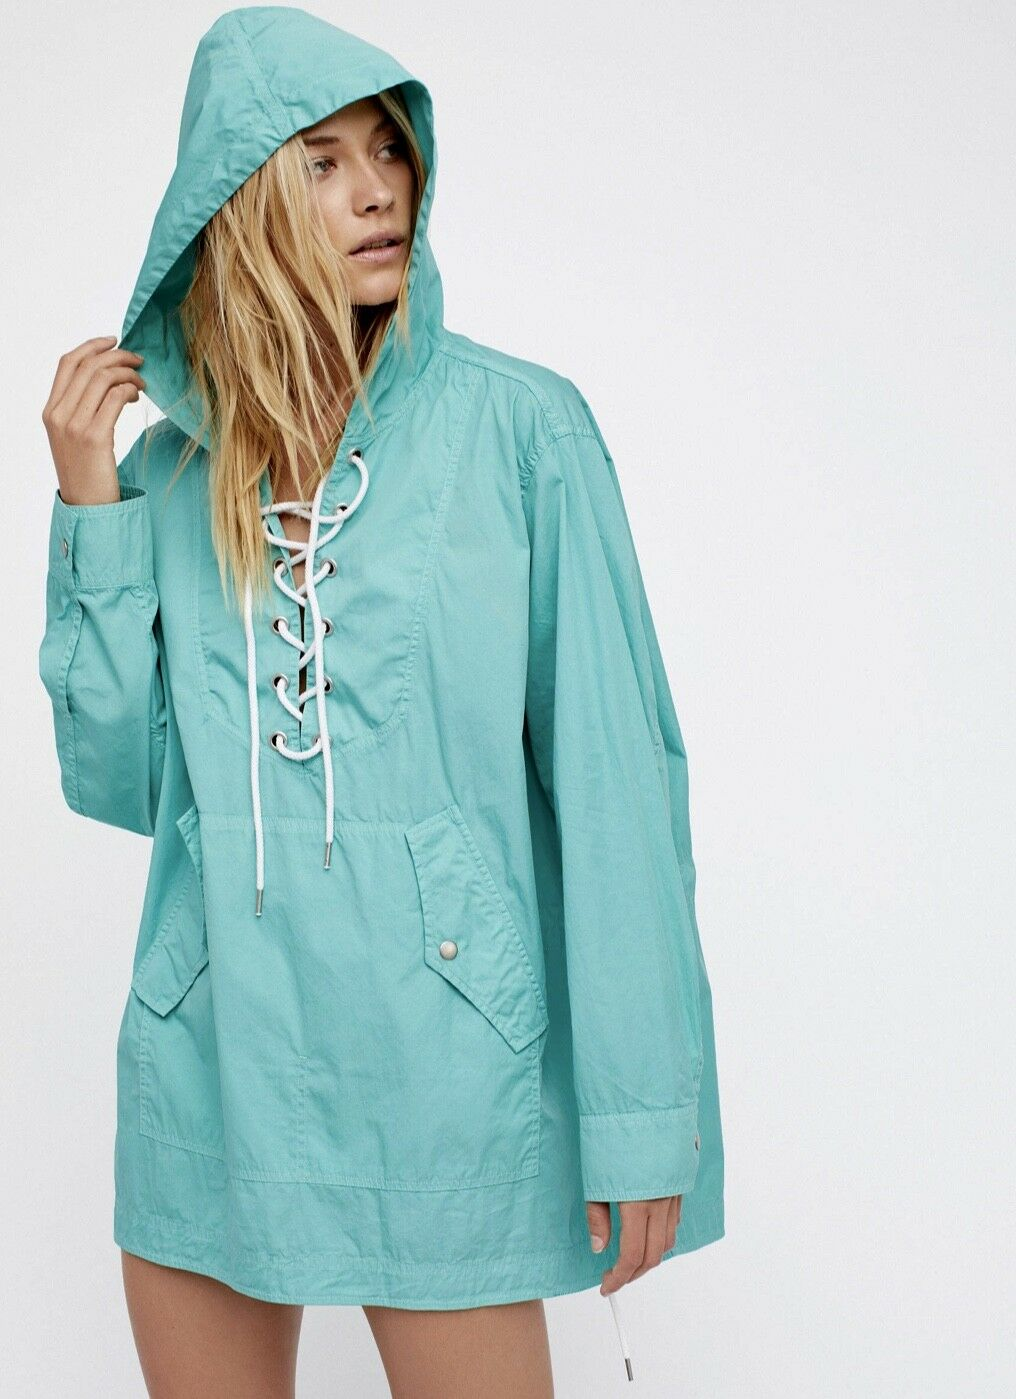 NEW Free People turquoise Hooded Lace Up Poplin Tunic Top Jacket Dress XS   S